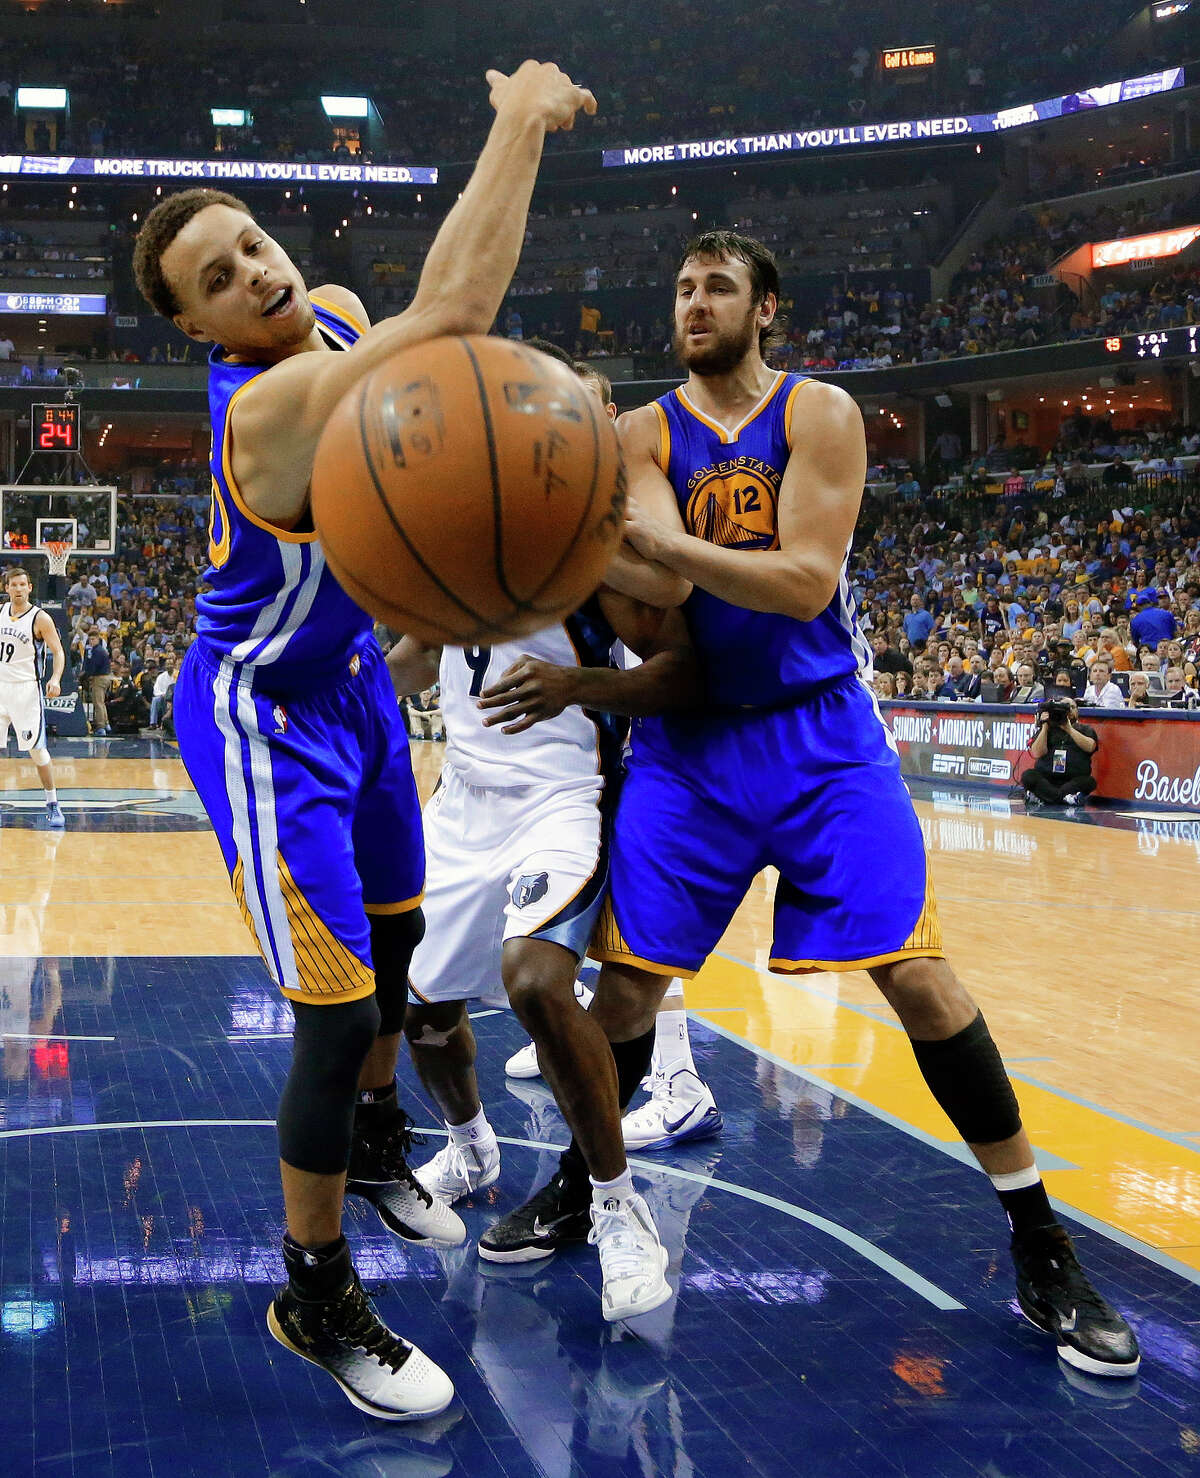 Stephen Curry, who scored 23 points, loses the ball out of bounds during the first half.